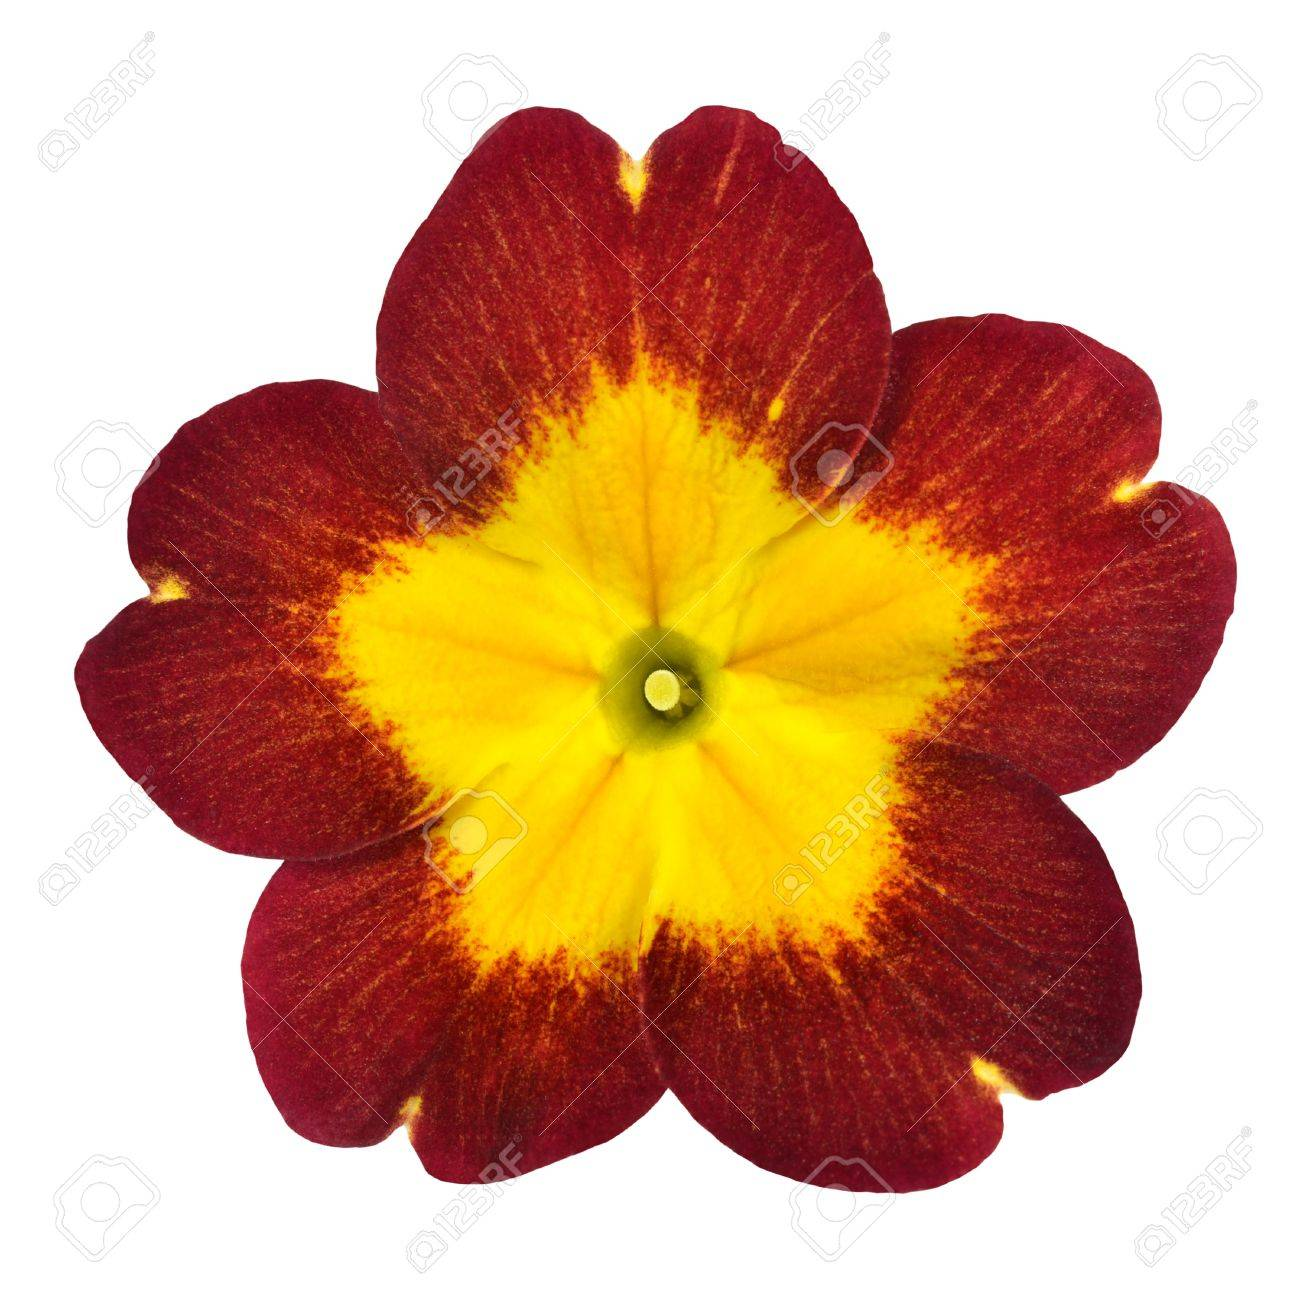 Red Primrose Flower With Yellow Center Isolated On White Background